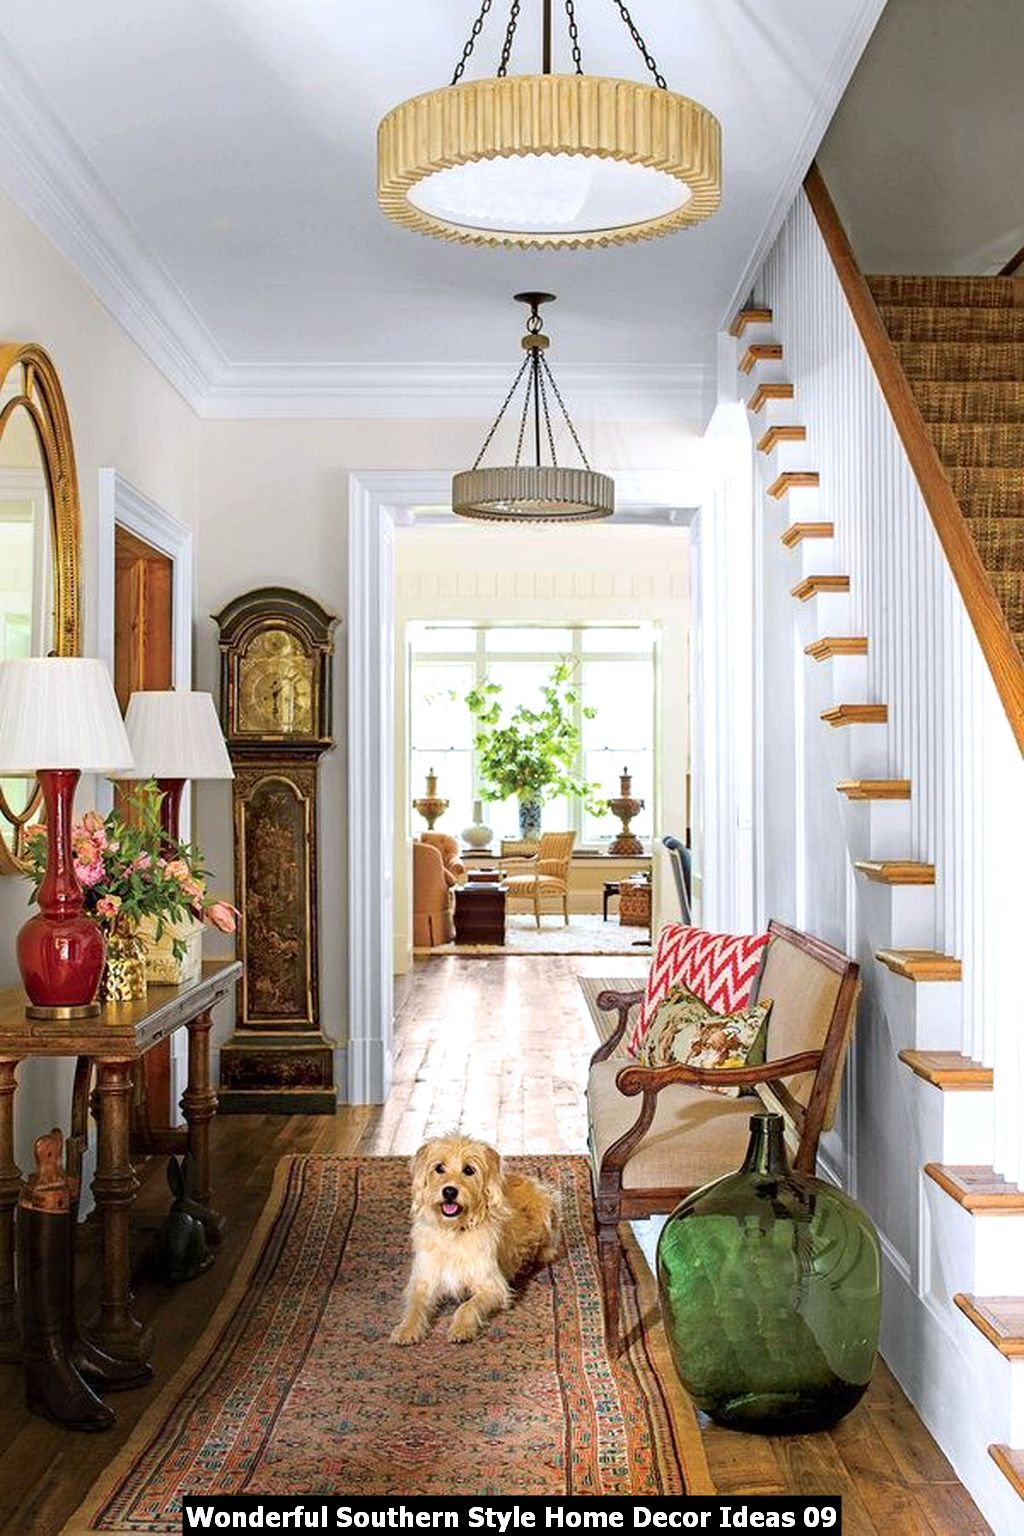 Wonderful Southern Style Home Decor Ideas 09